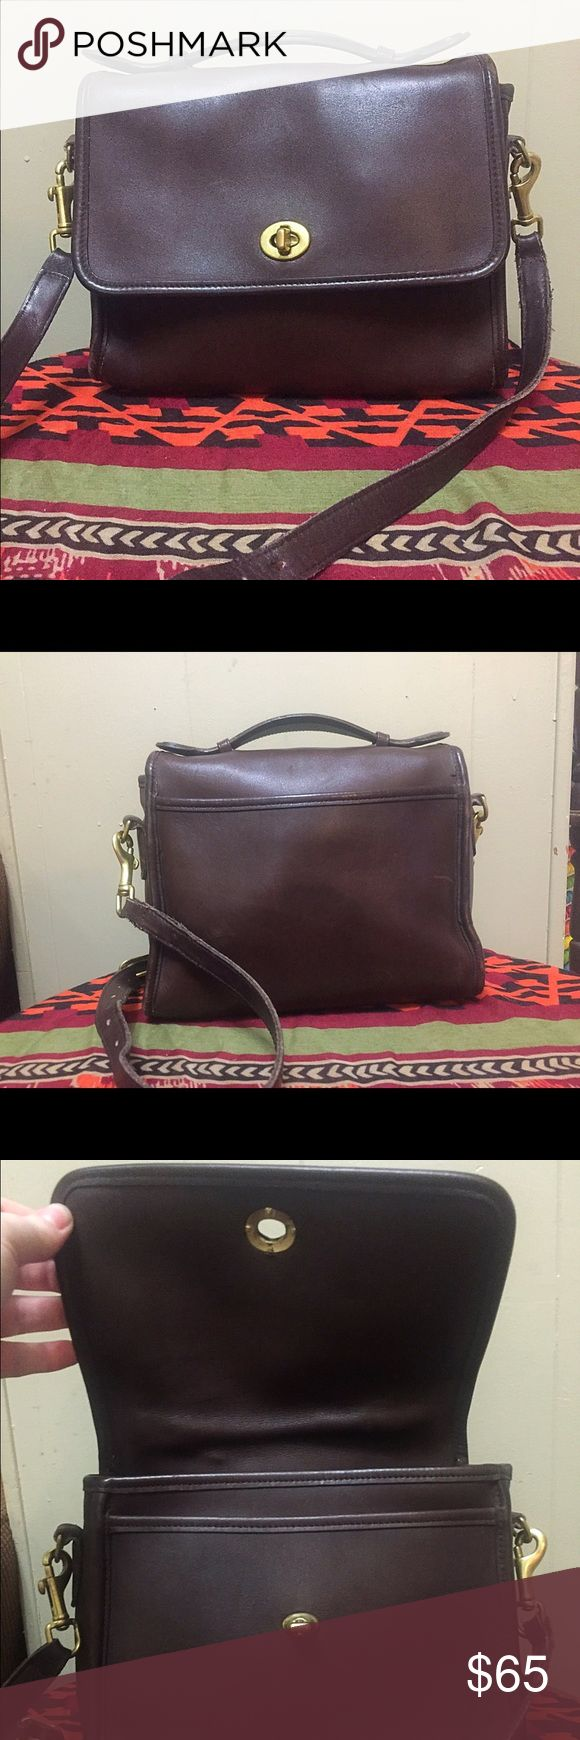 Coach Legacy Turn Lock Satchel Beautiful Brown Coach Legacy Turn Lock Satchel. Excellent vintage condition Width 10 inches.                                             Height 9 inches. Depth 4 inches. From a smoke free home. Coach Bags Satchels